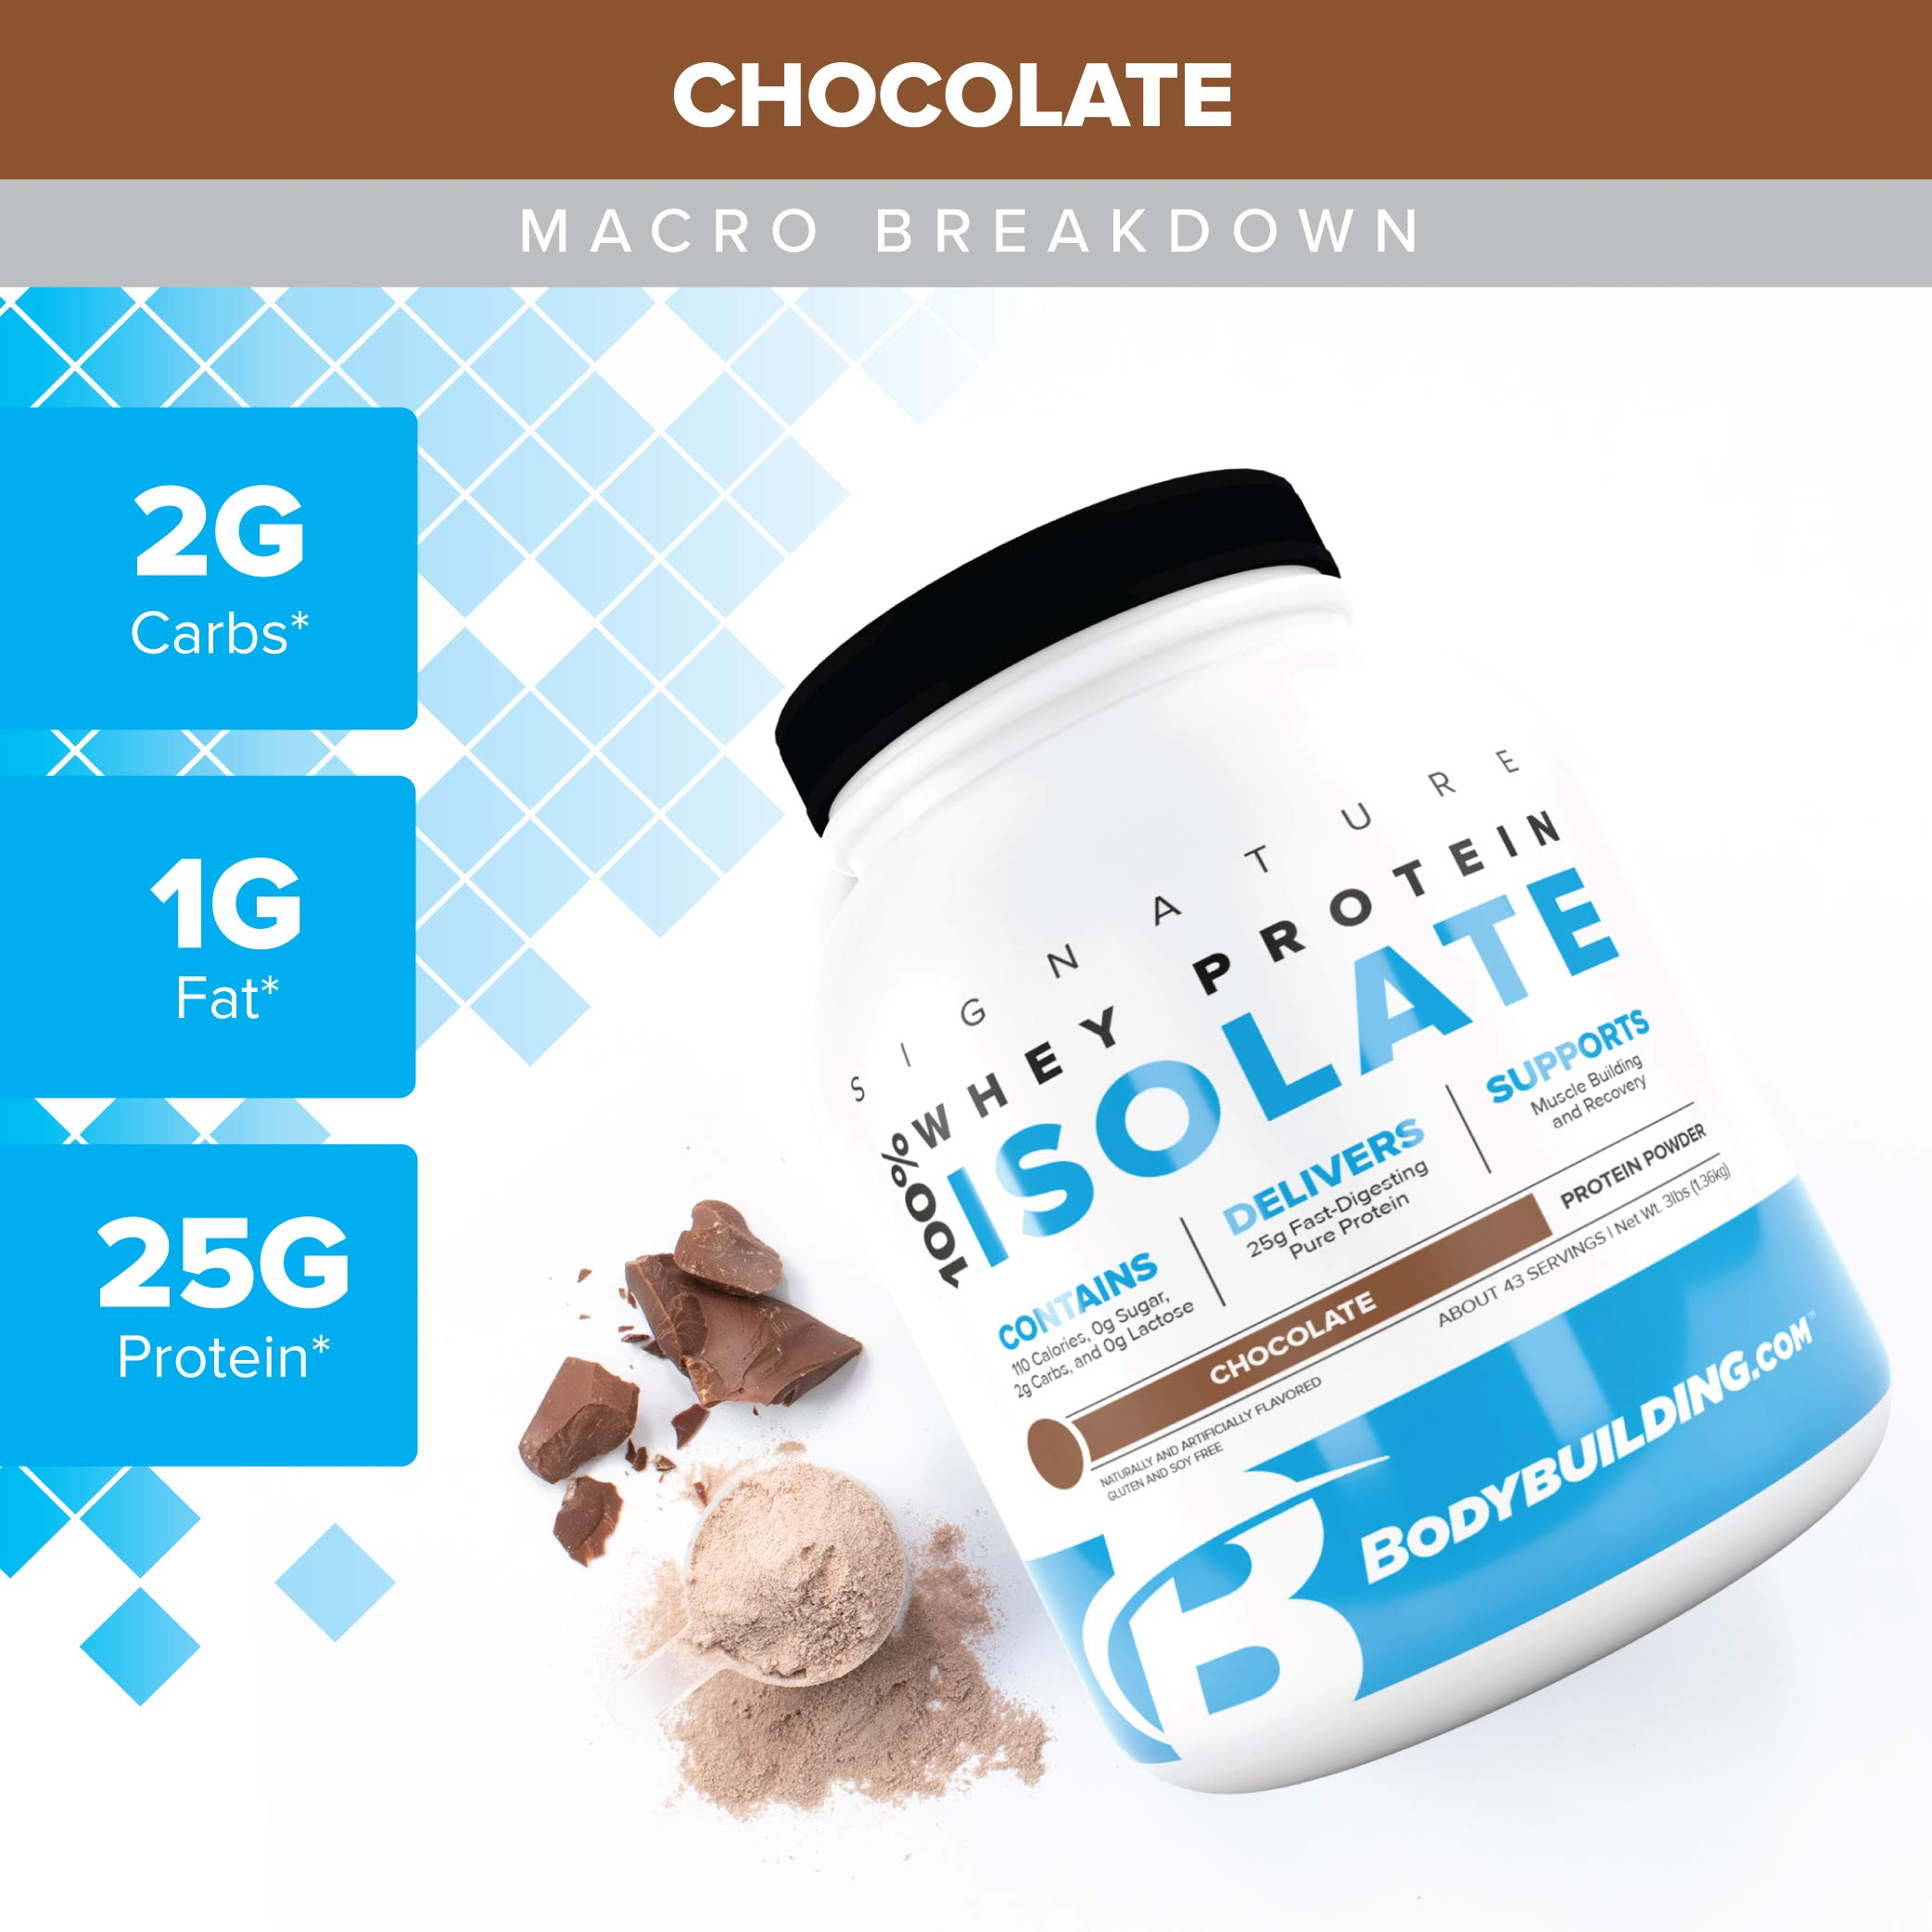 Bodybuilding Signature 100% Whey Protein Powder | Chocolate Isolate | 25g of Protein per Serving | 3 lbs by Bodybuilding.com